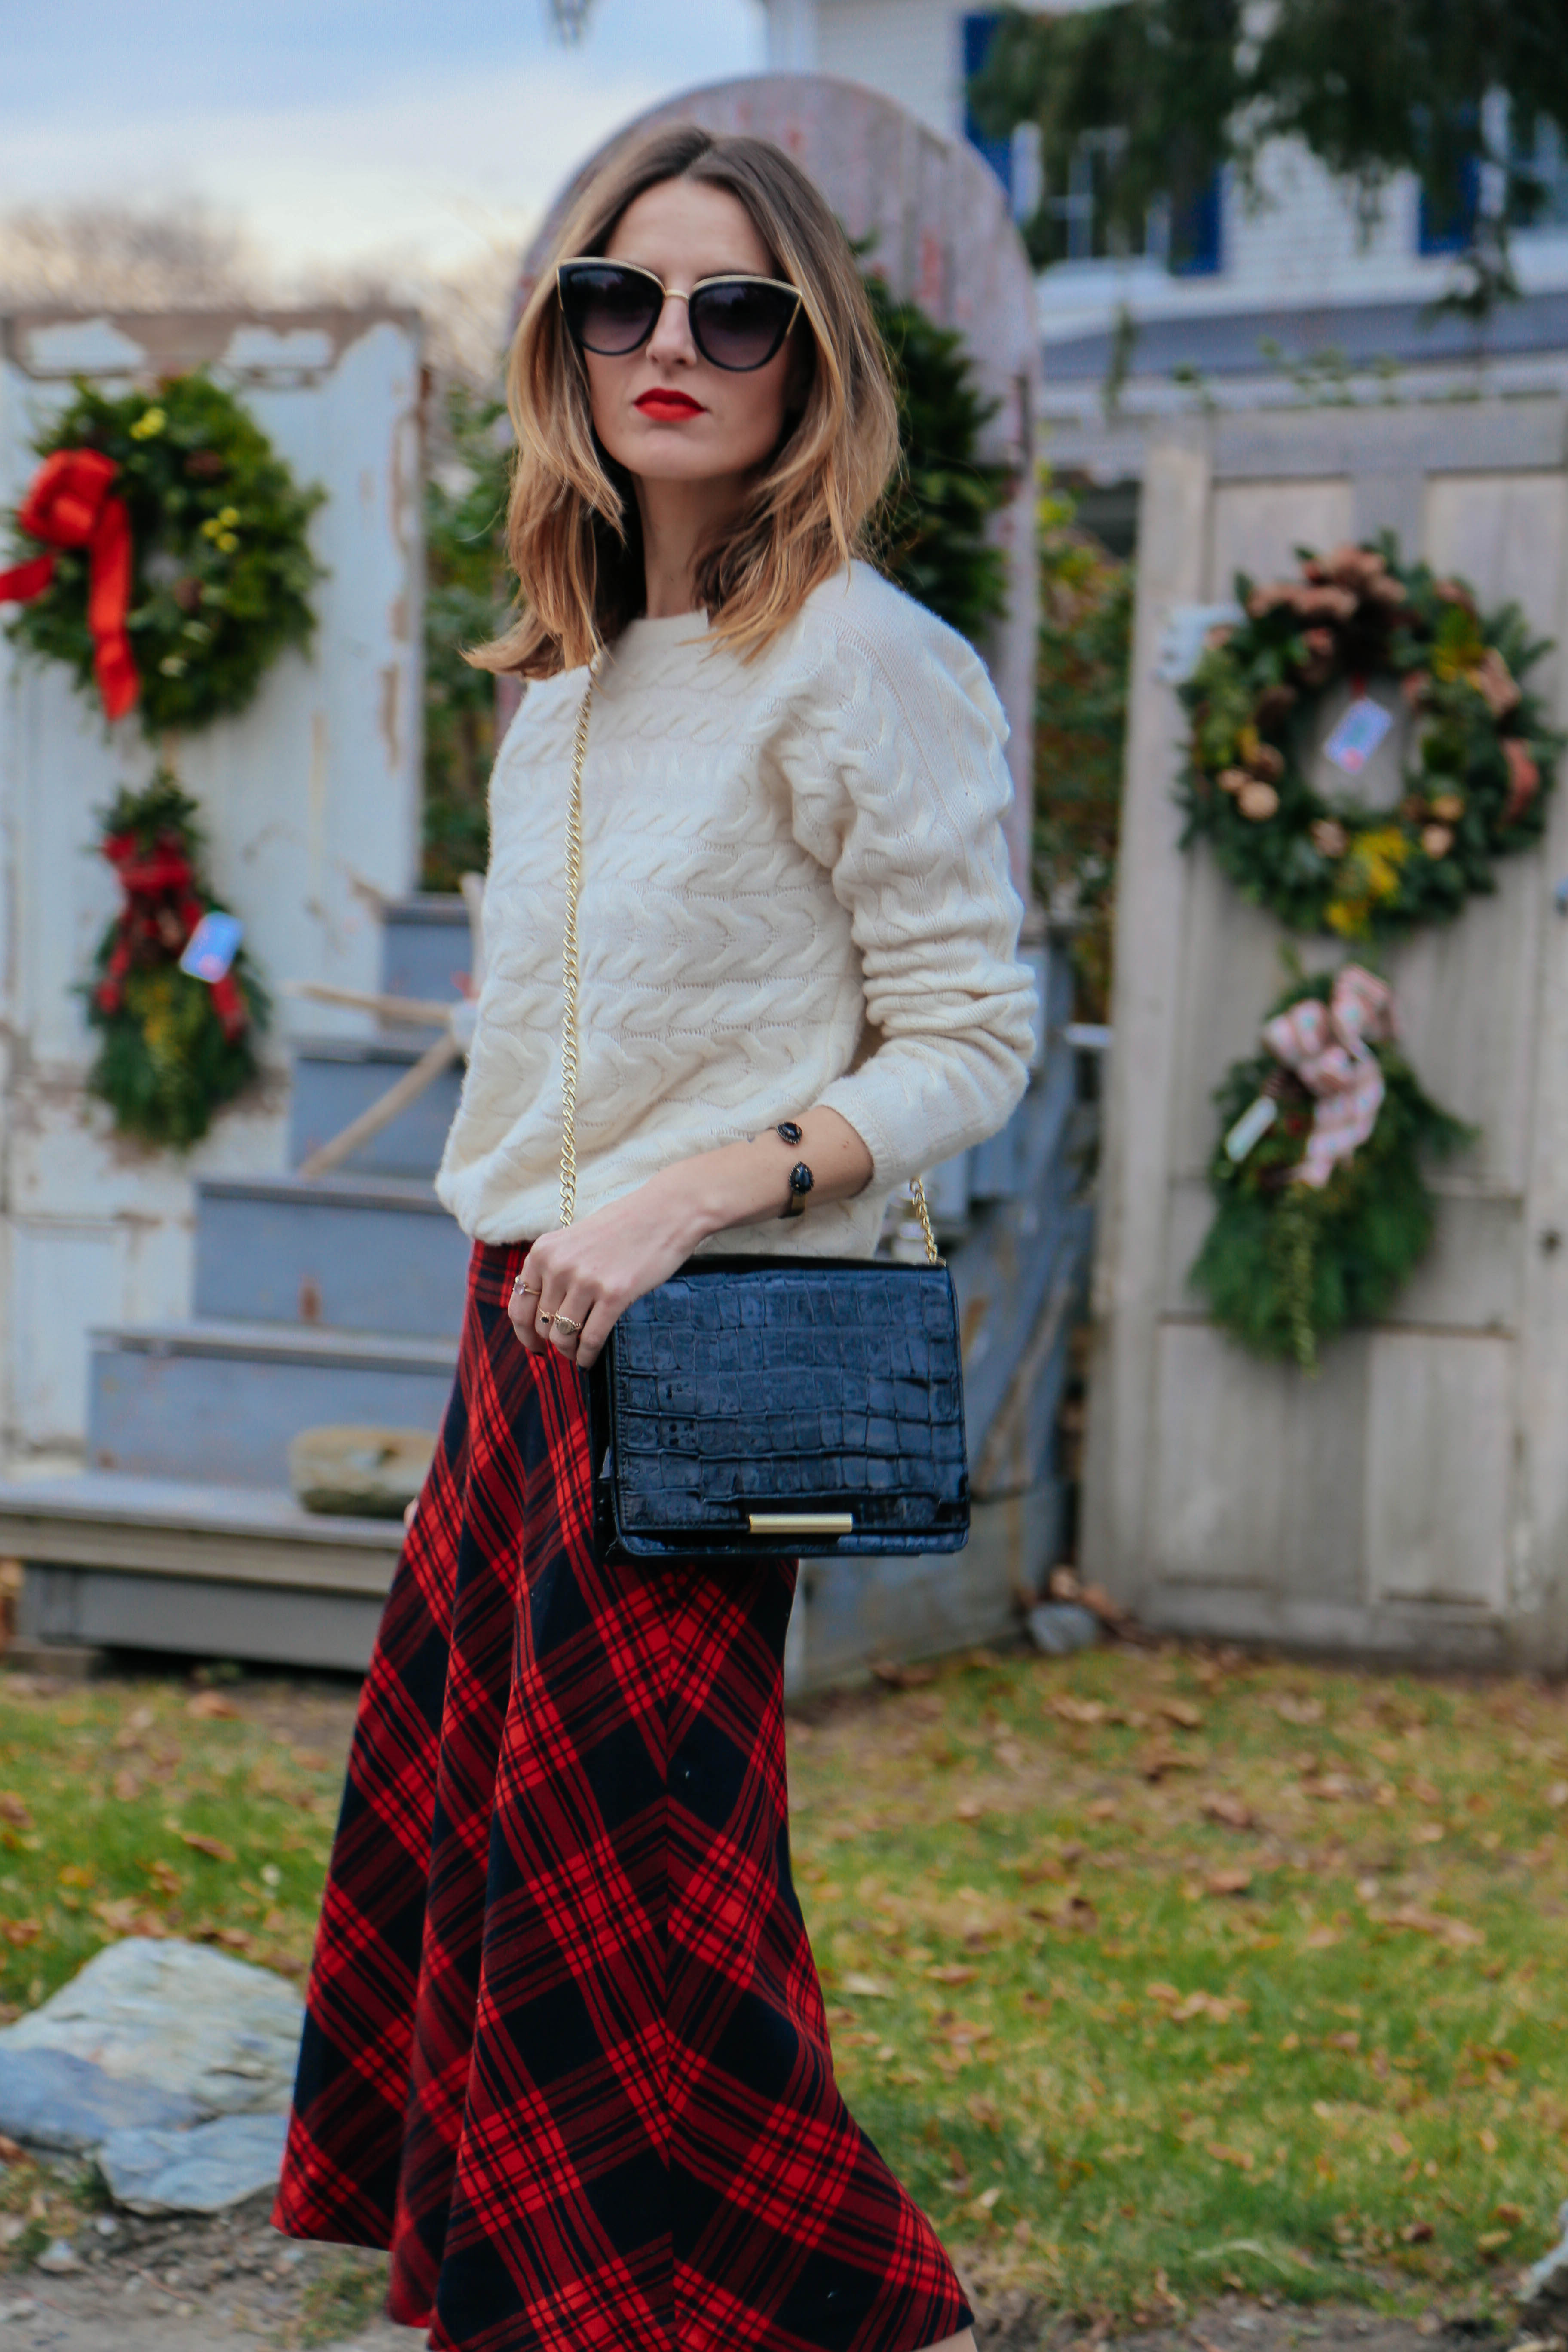 Plaid Skirt And Cable Knit Sweater